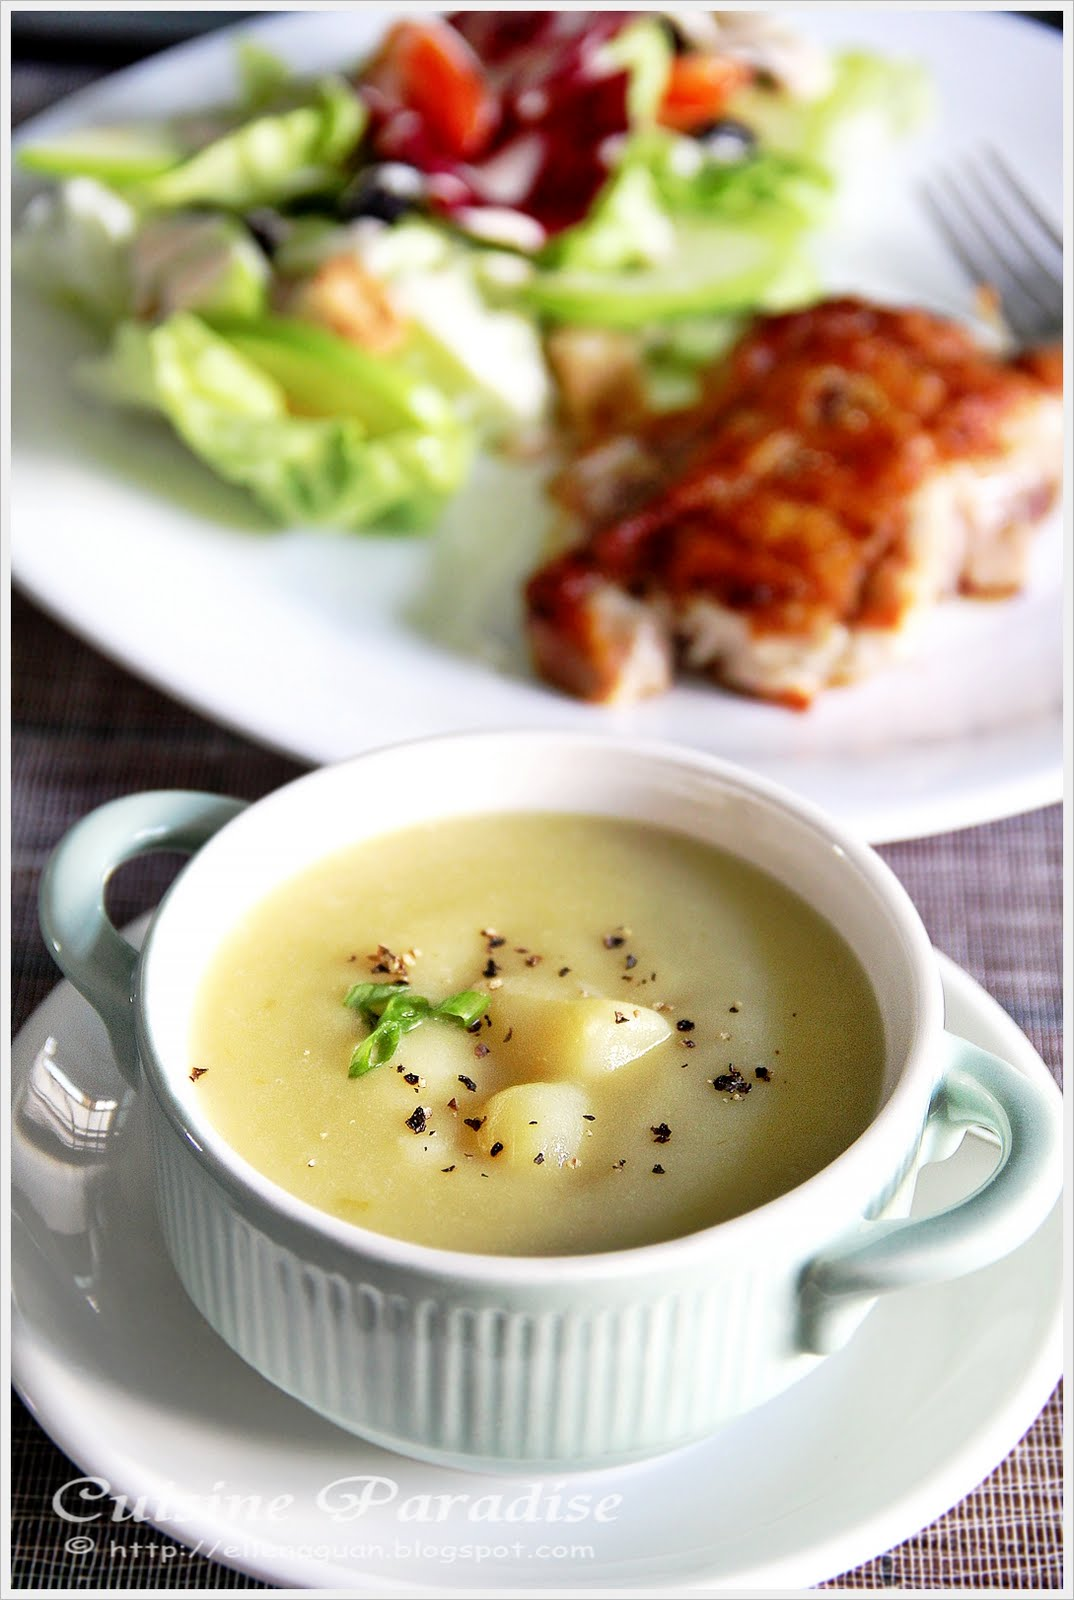 S20 budget meal leek and potato soup grilled chicken cutlet and s20 budget meal leek and potato soup grilled chicken cutlet and green apple salad forumfinder Gallery